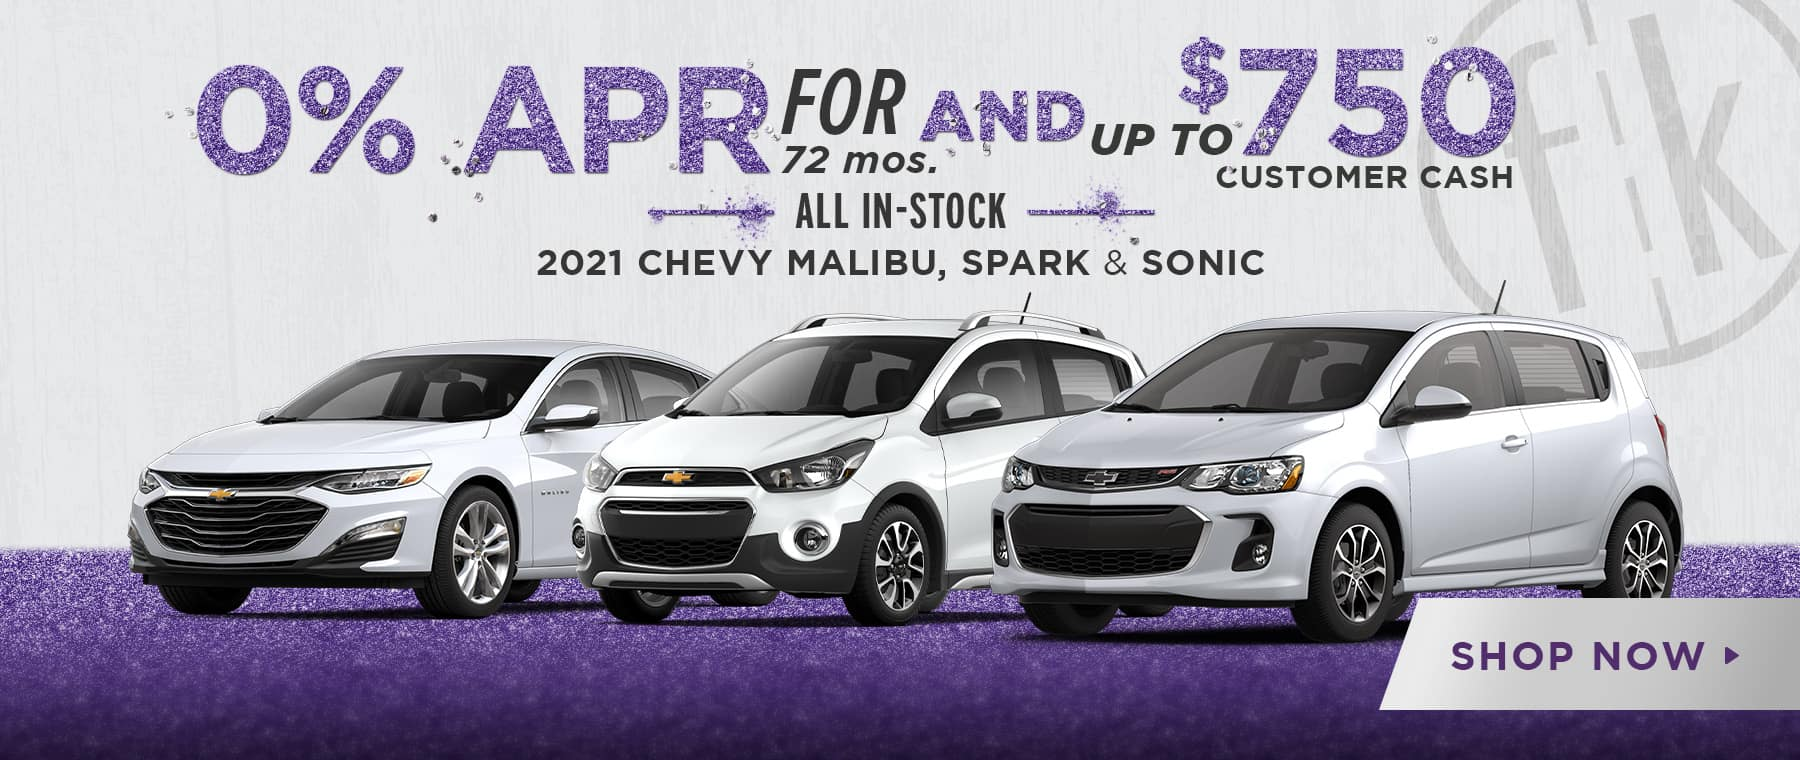 0% for 72 mos. AND get up to $750 Customer Cash 2021 Malibu, Spark, & Sonic